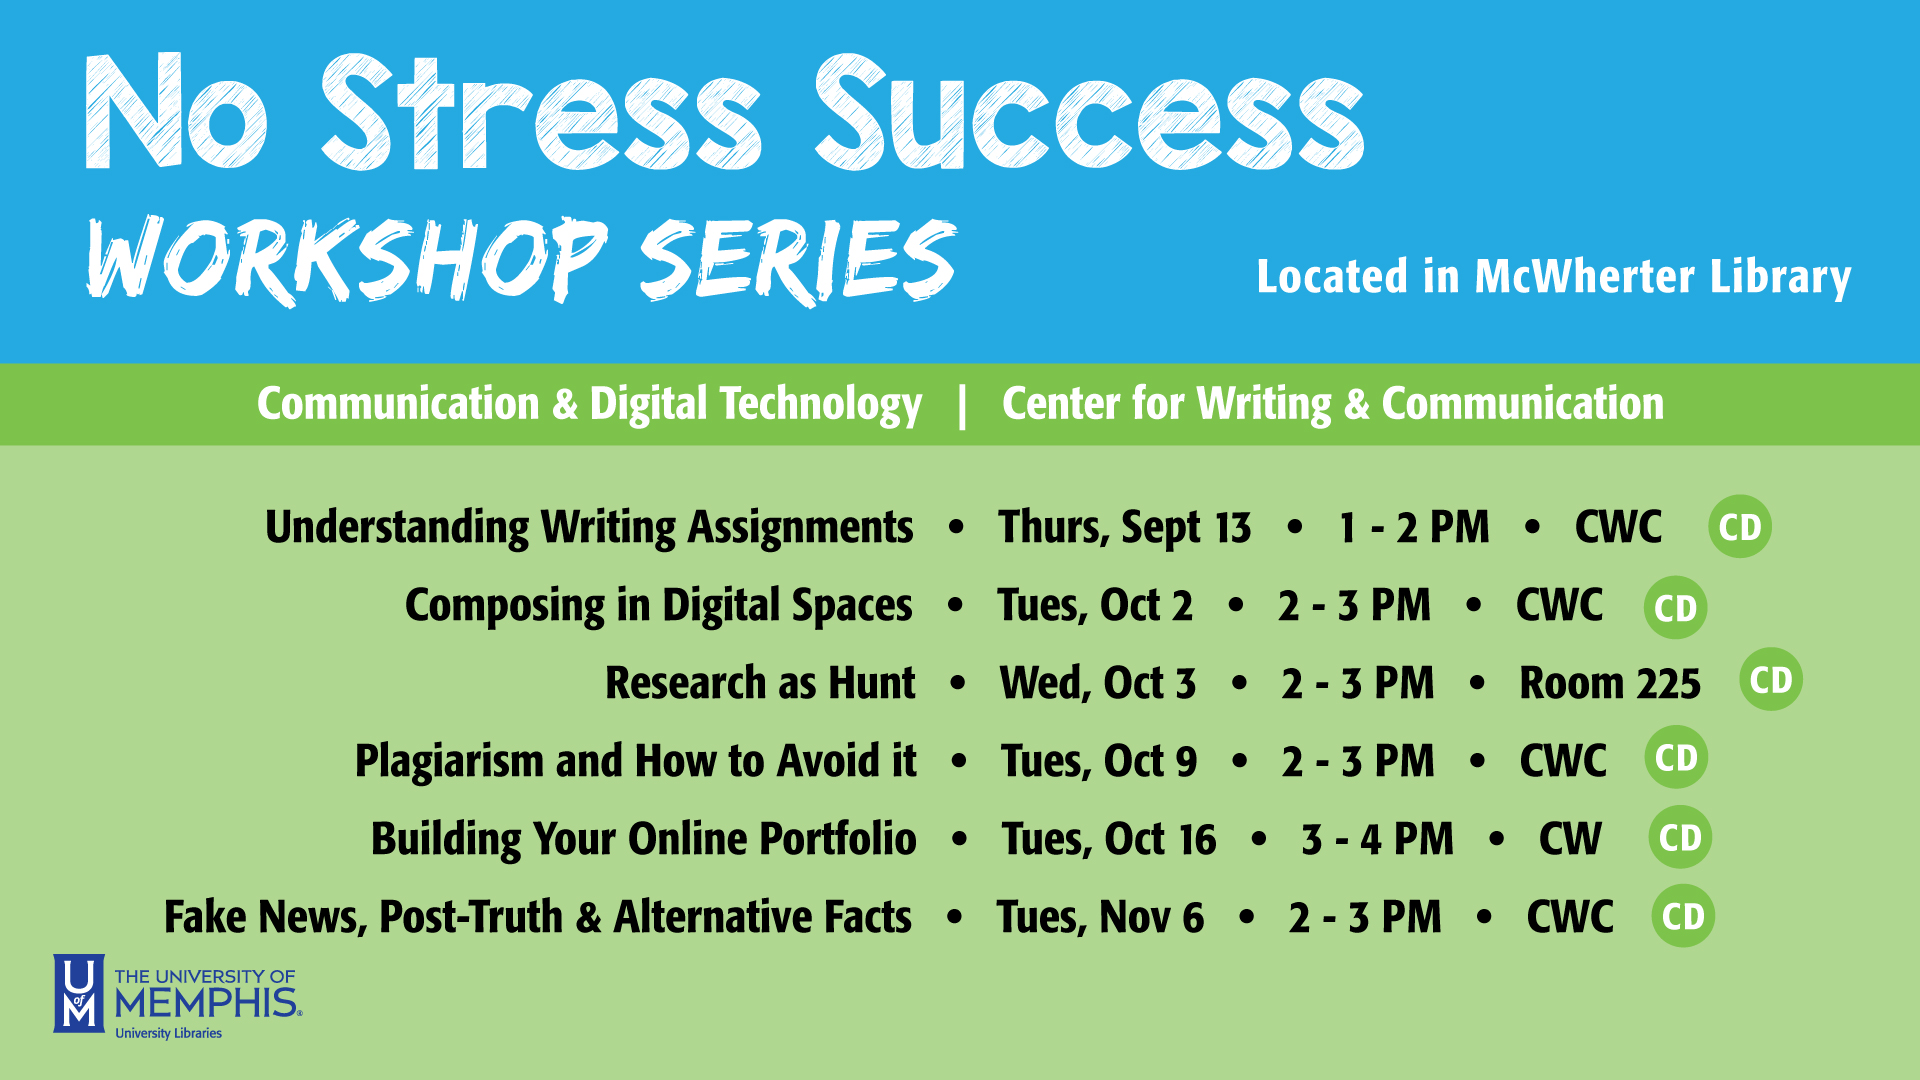 No Stress Success Workshop: Research as Hunt